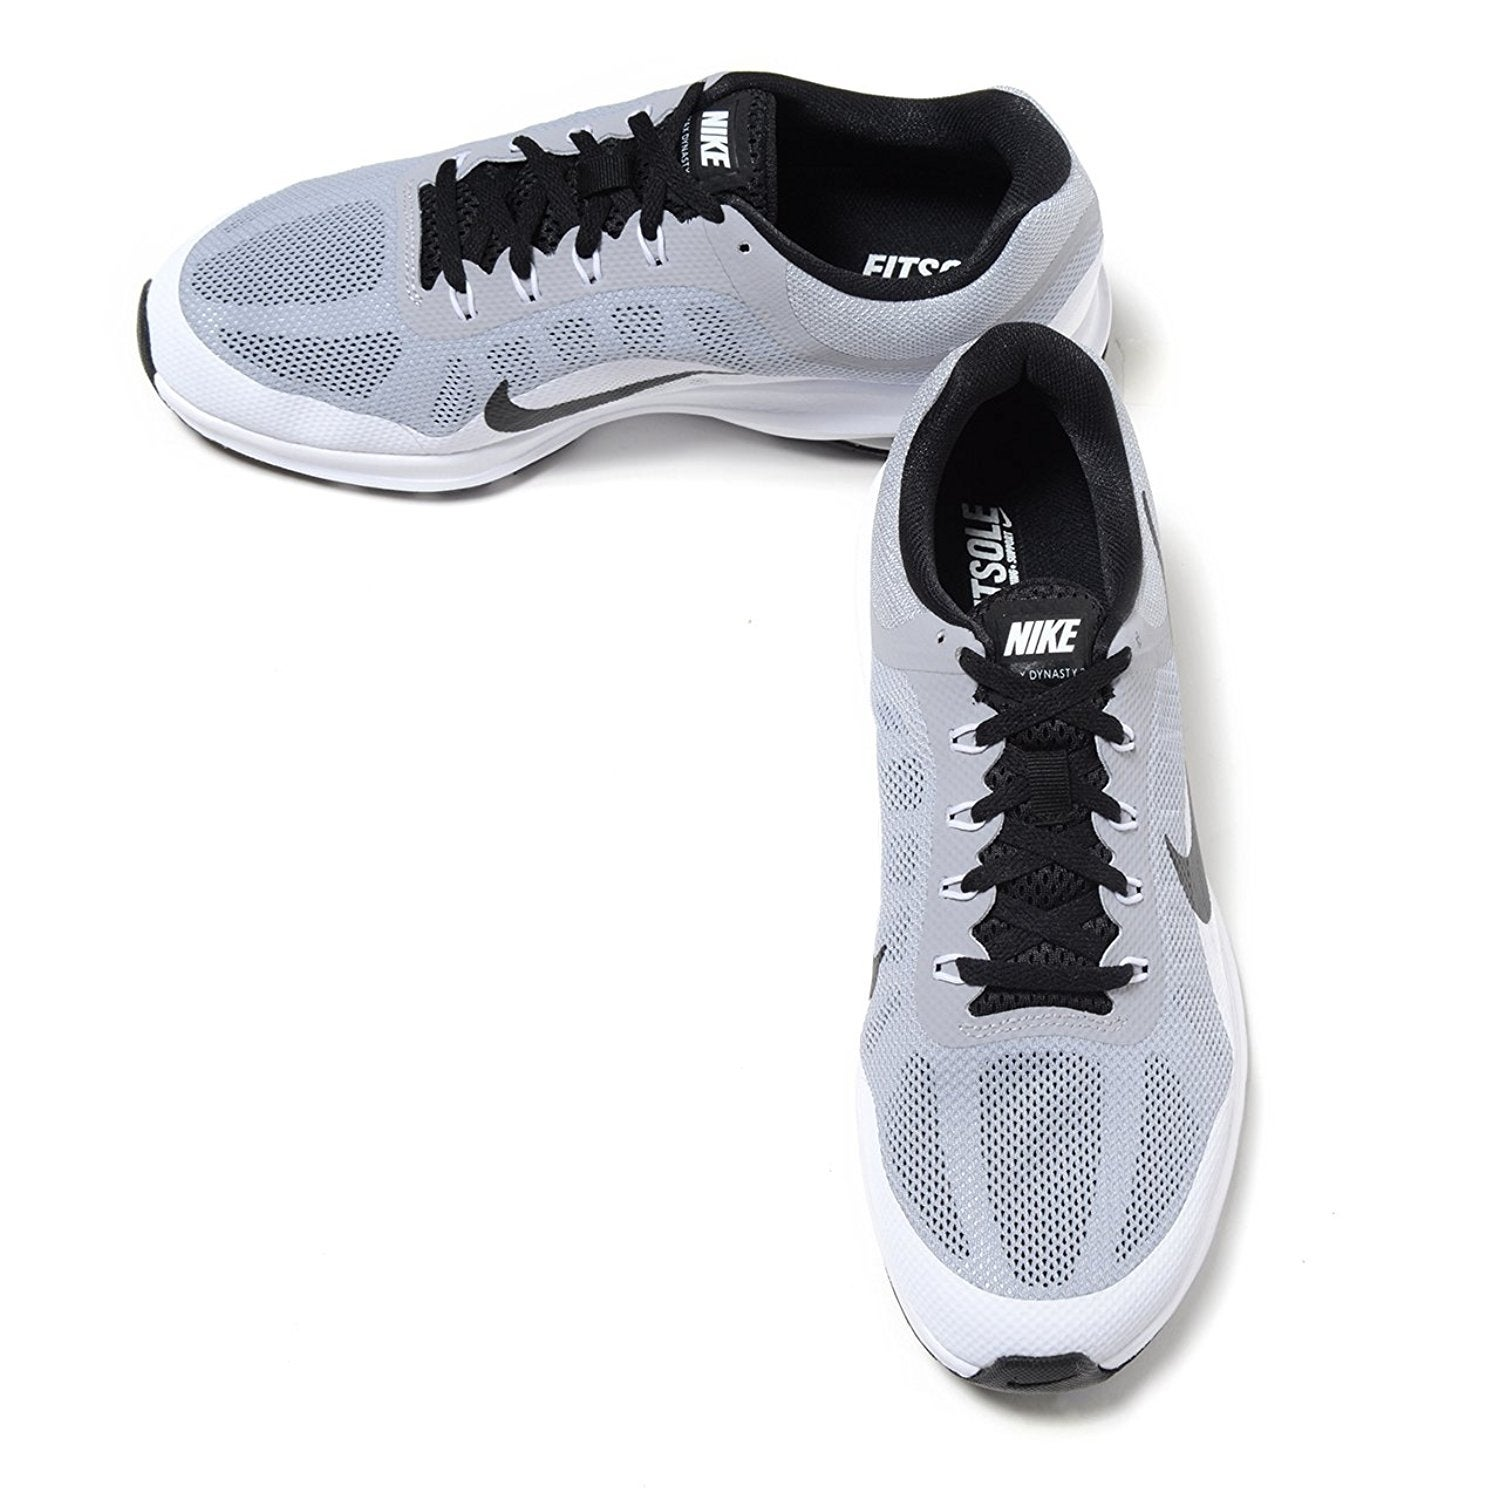 e695777a1fc Shop Nike Air Max Dynasty 2 Wolf Grey White White Men s Black Running Shoes  - wolf grey white white black - Free Shipping Today - Overstock - 18280214